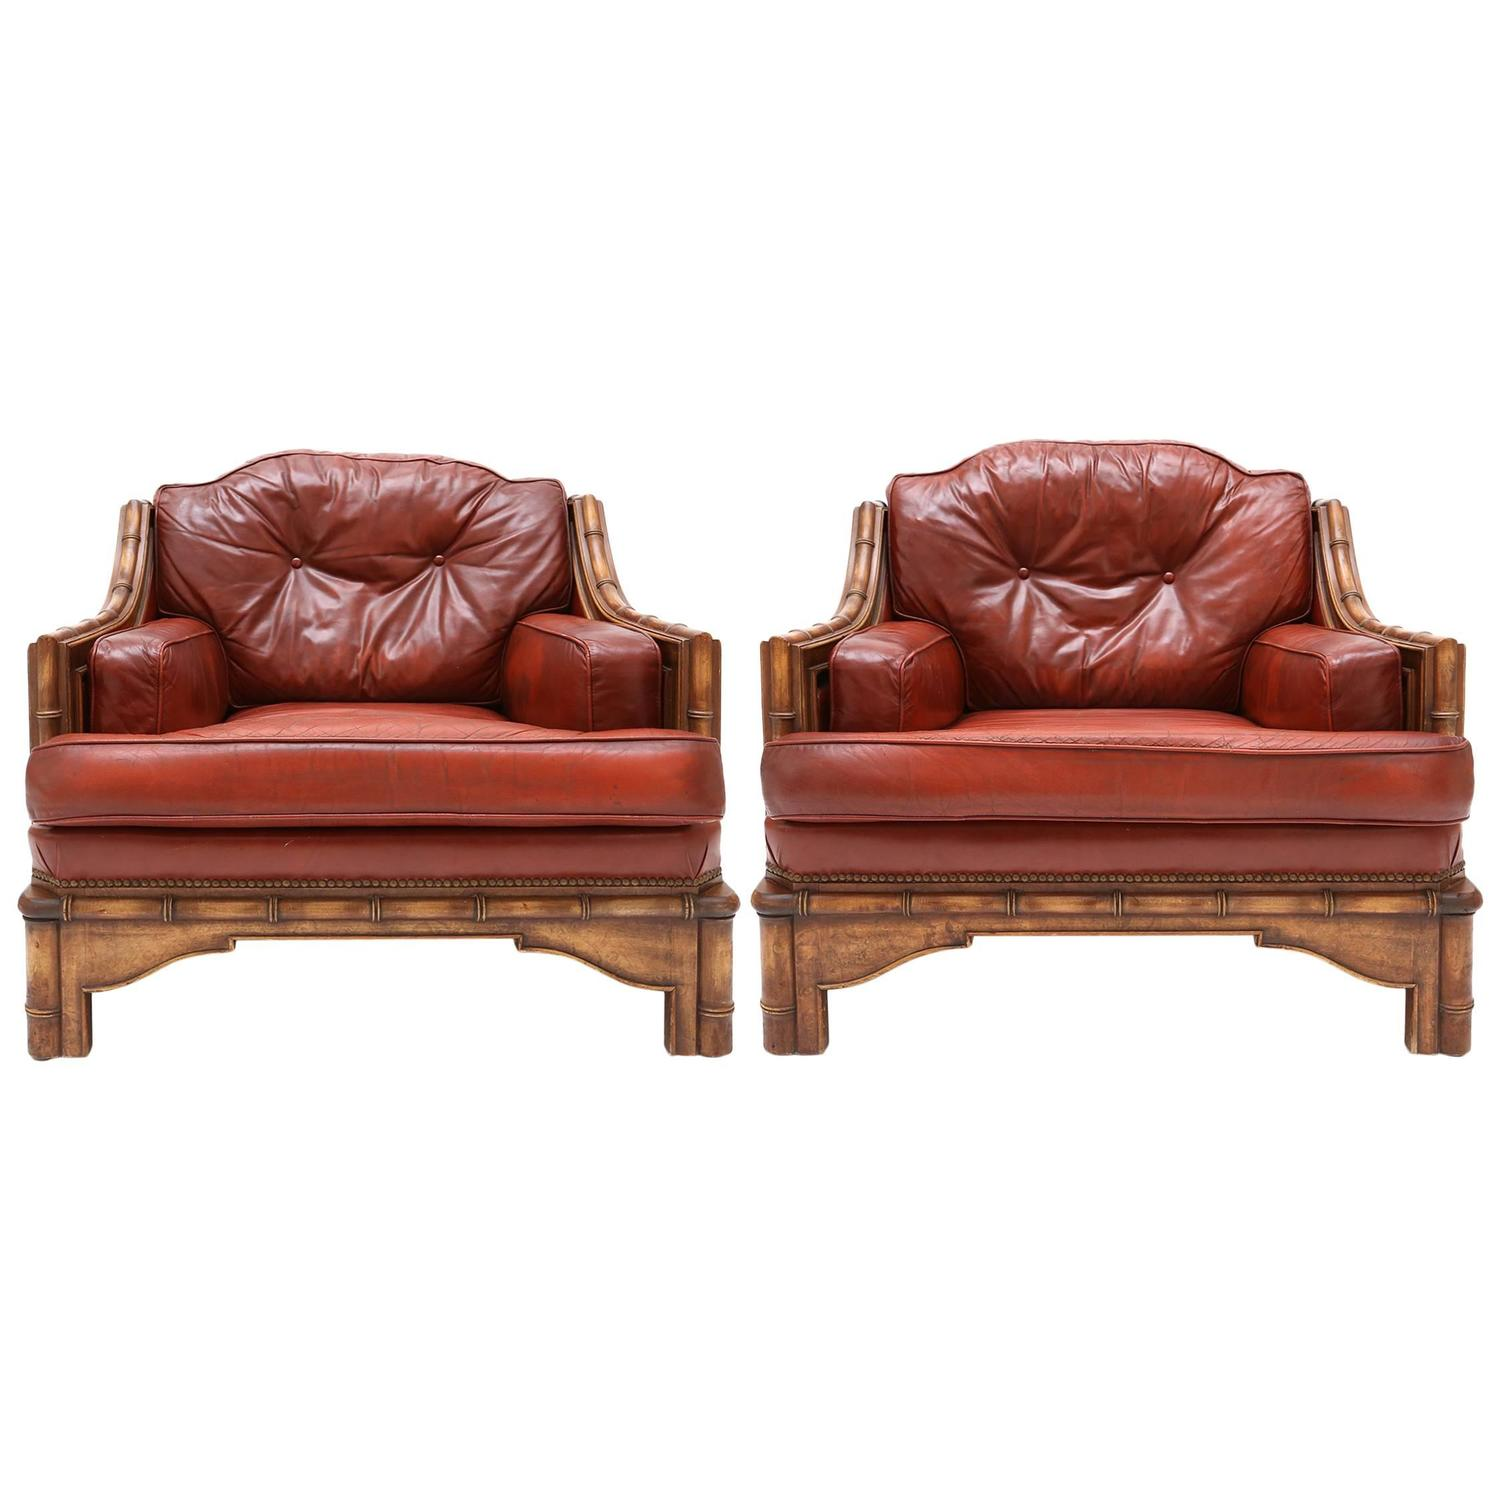 red chairs for sale kid sized pair of leather club at 1stdibs